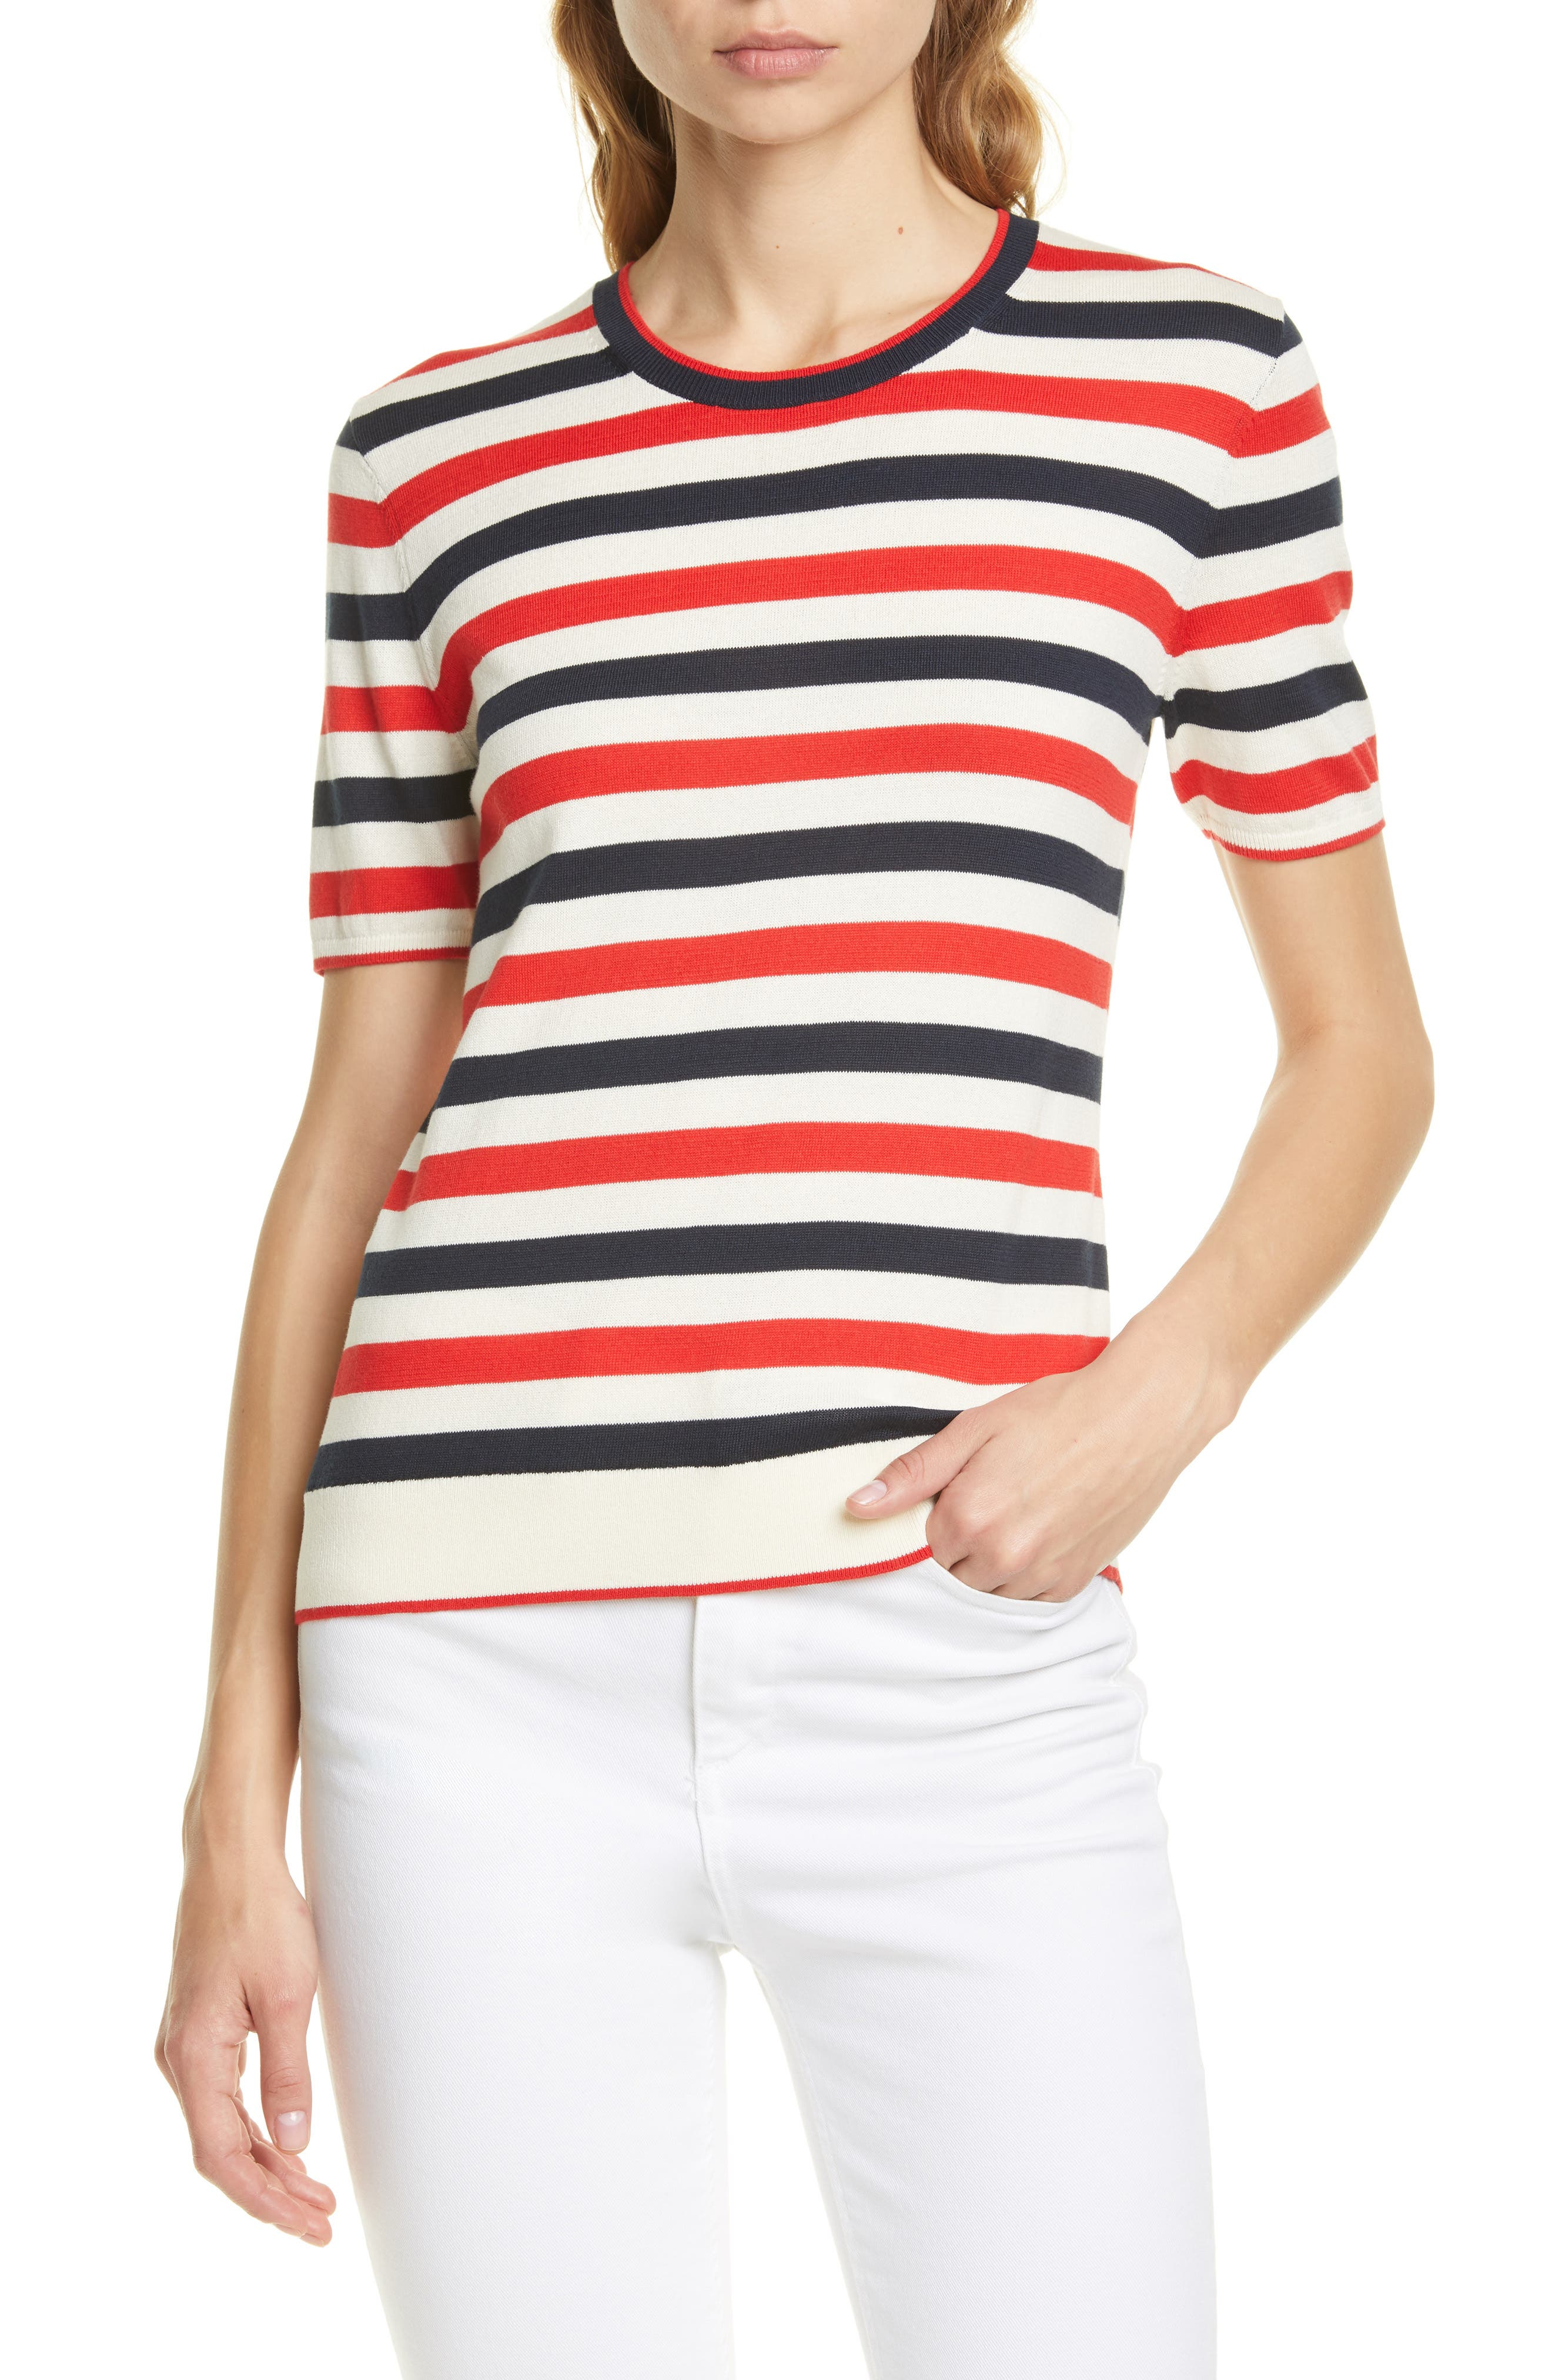 1940s Blouses and Tops LA LIGNE Fitted Stripe Cotton Sweater Tee Size X-Small - Cream Navy Red at Nordstrom Rack $49.99 AT vintagedancer.com